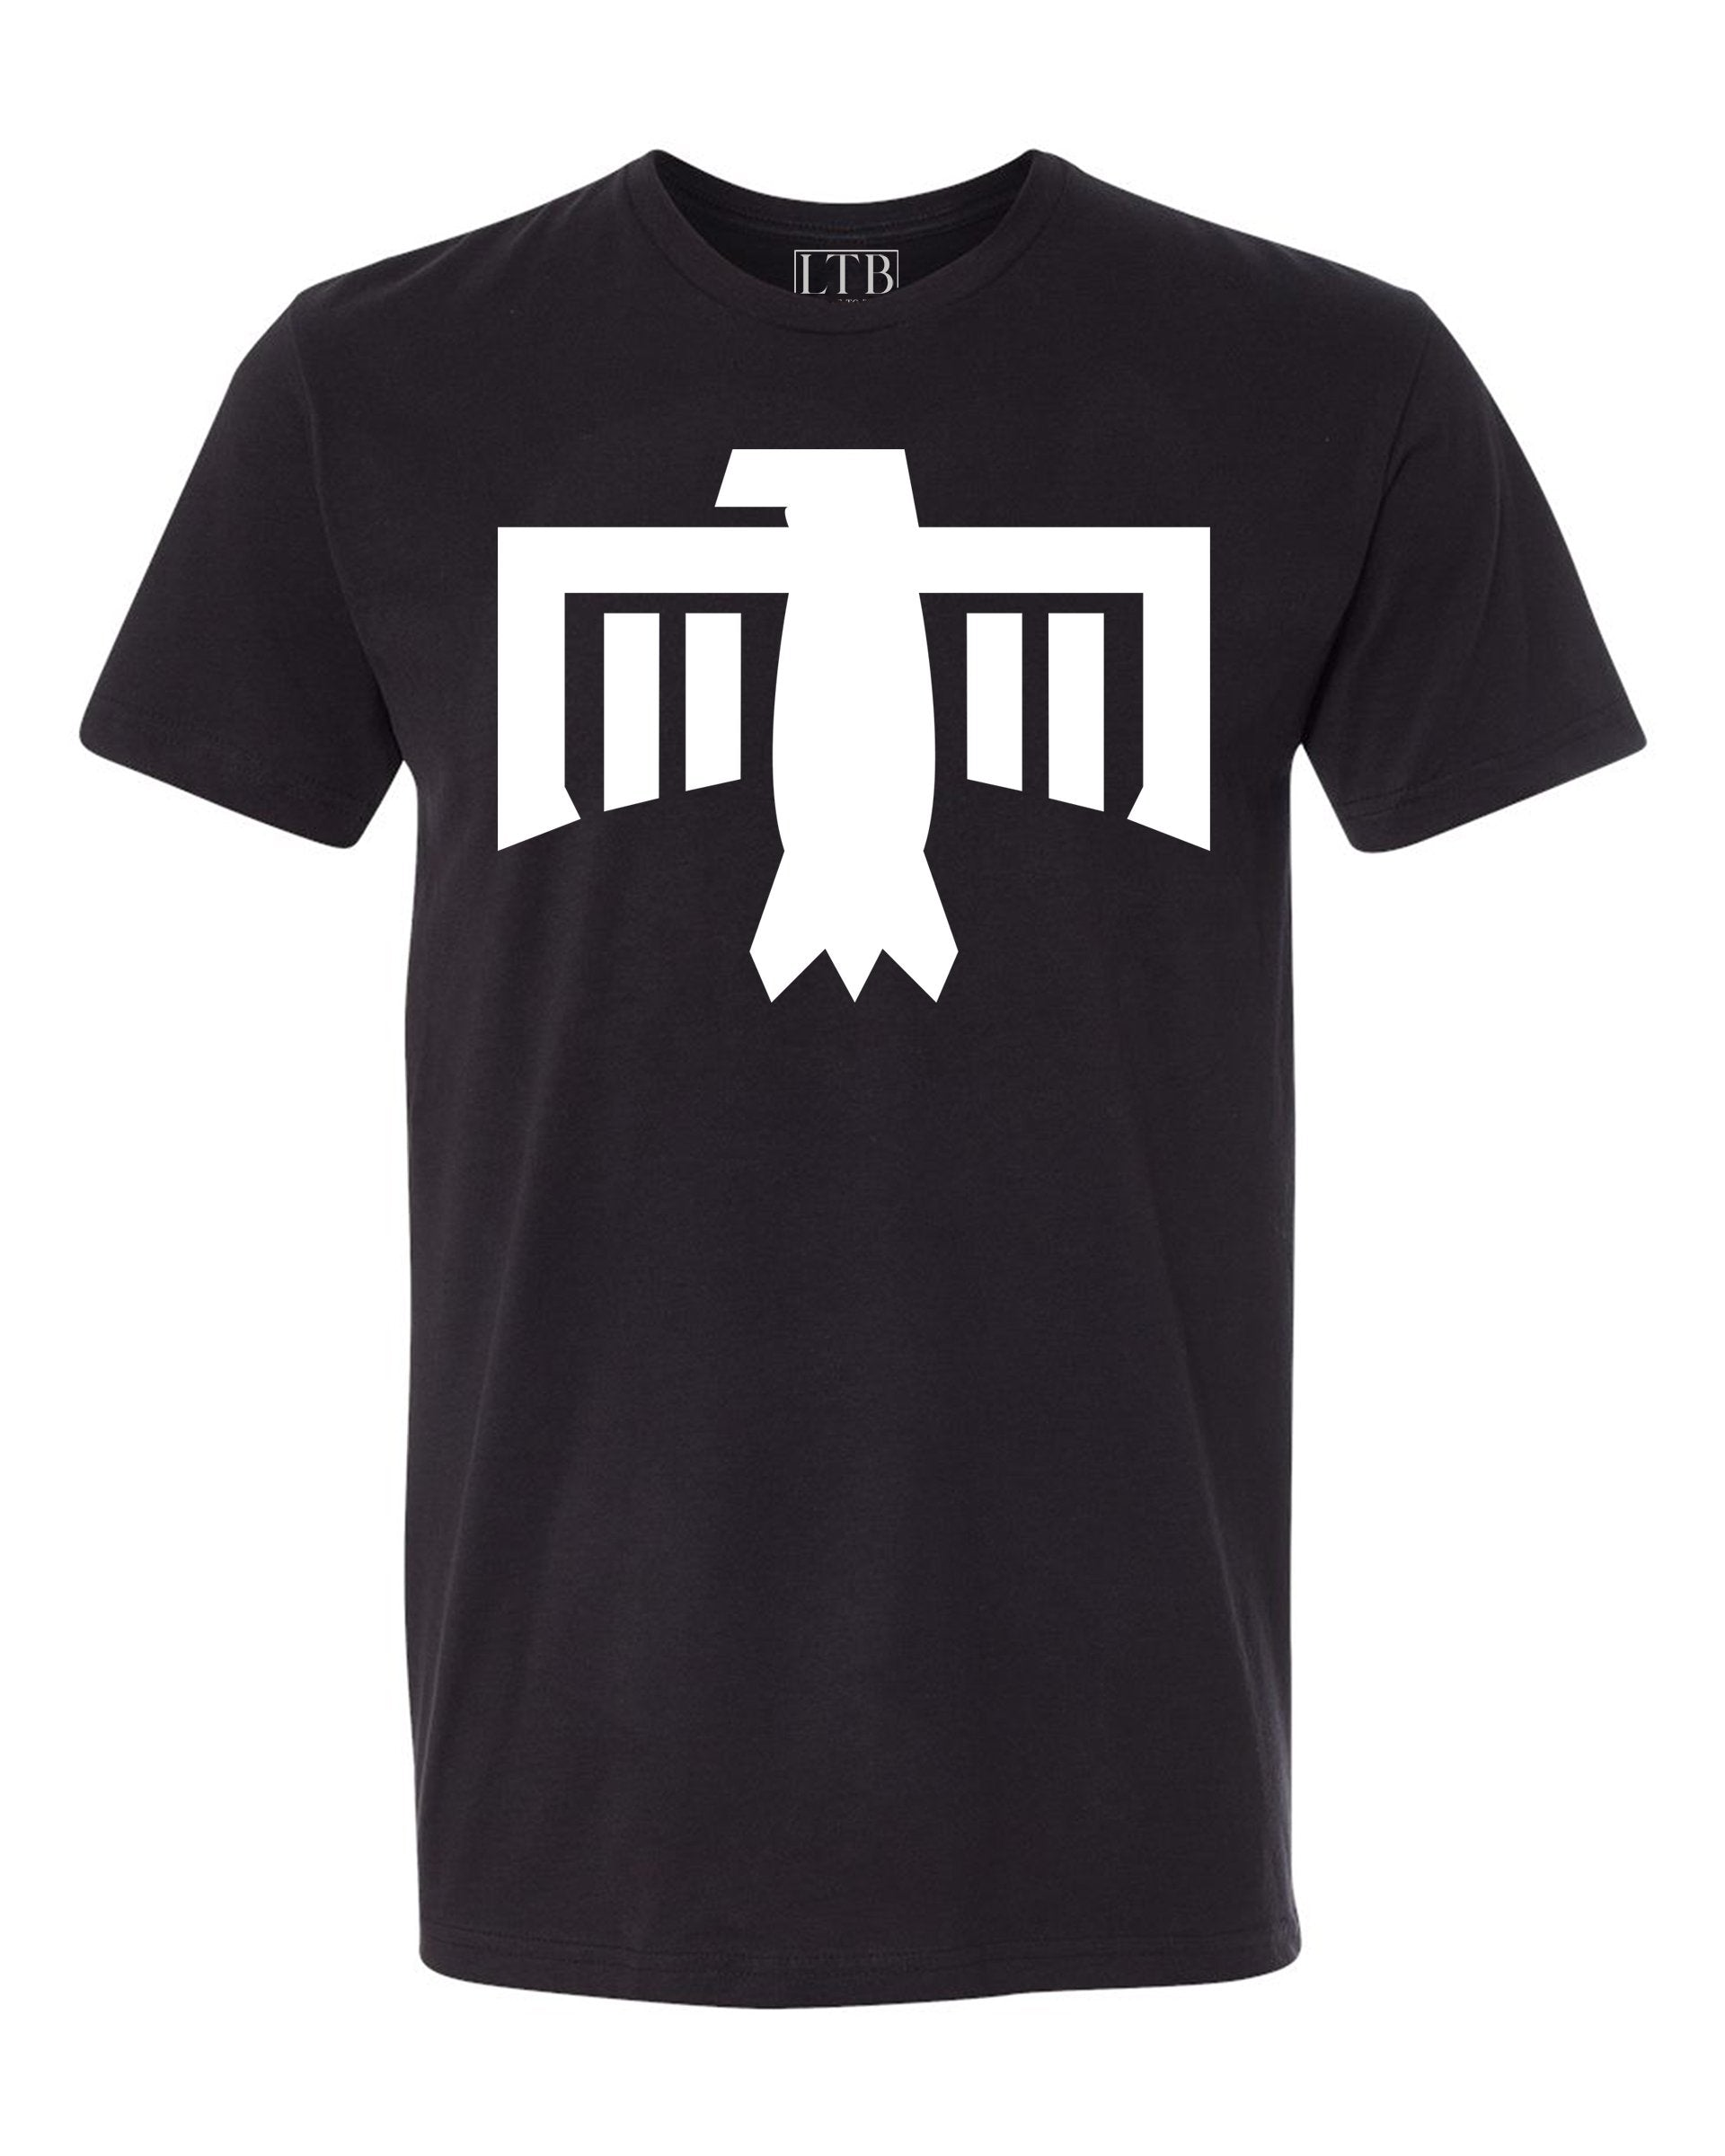 Thunderbird Tee Black & White